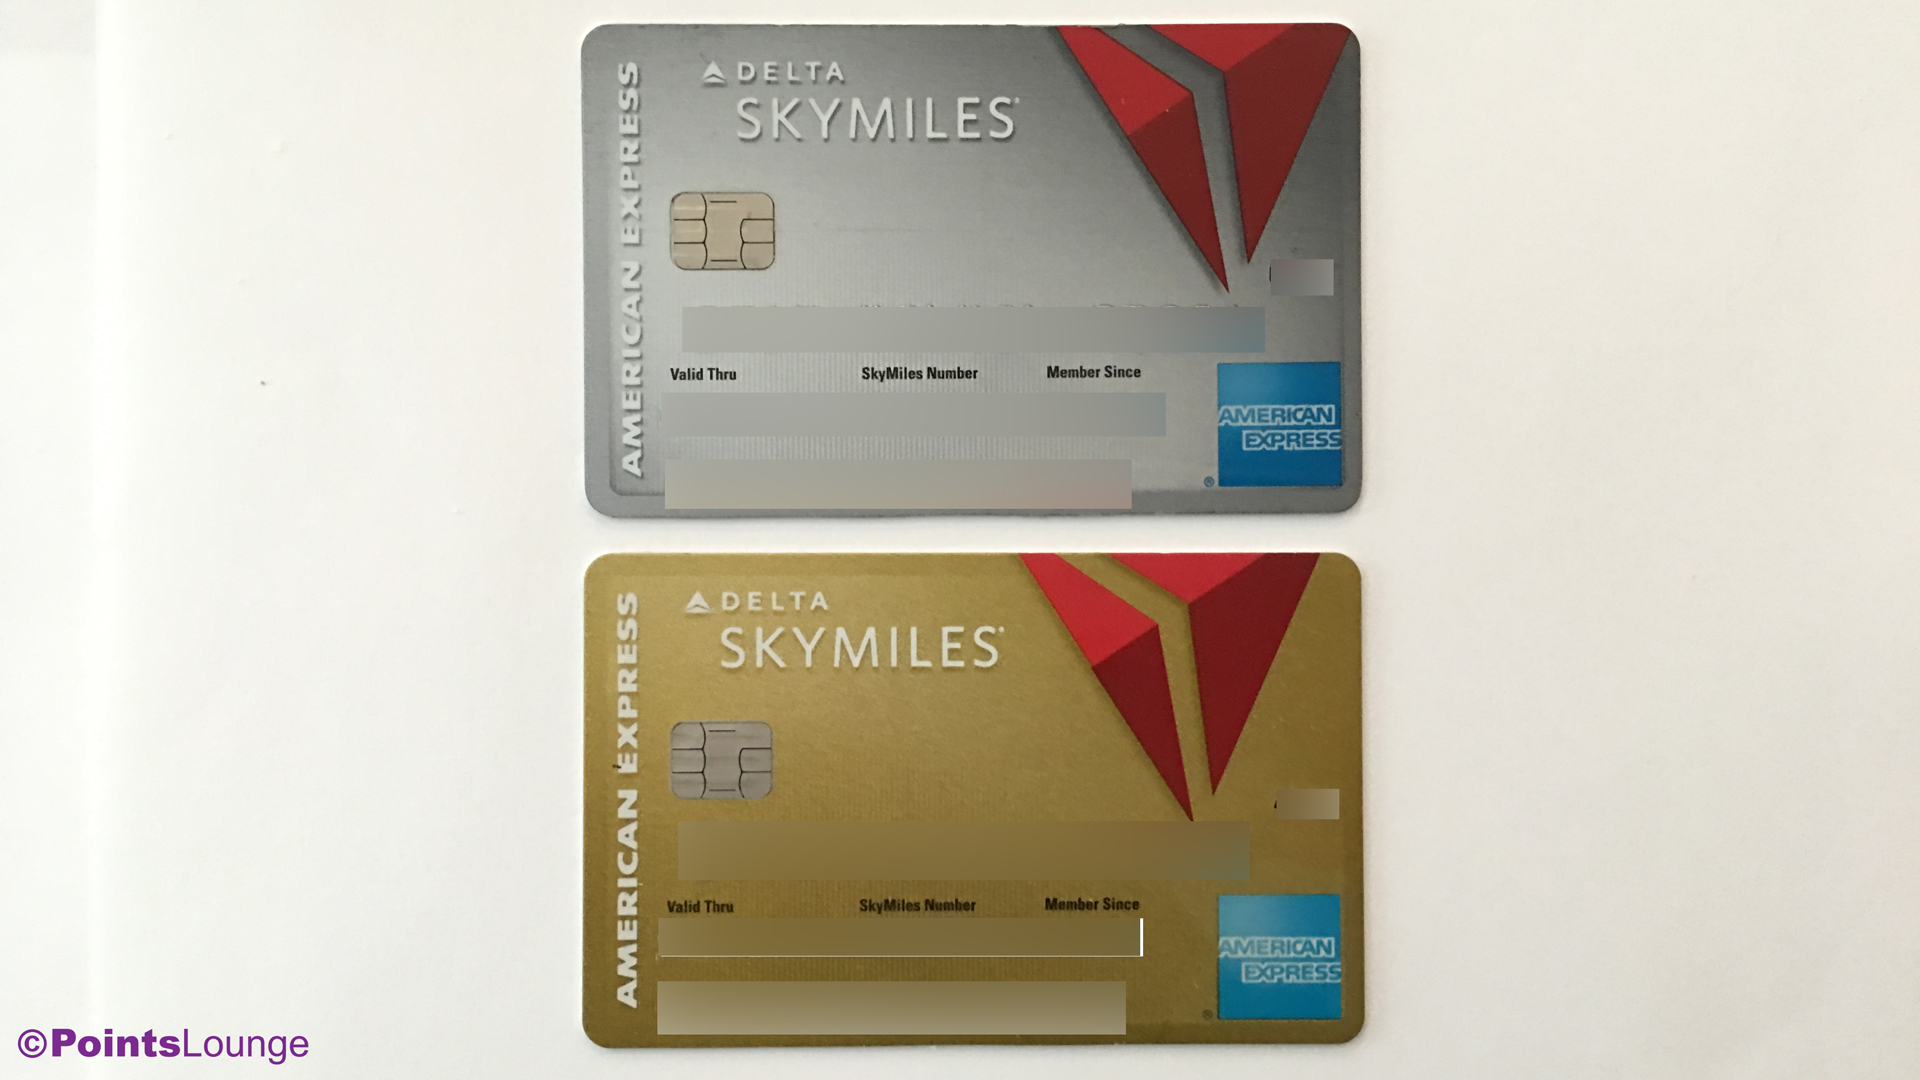 delta reserve business credit card american express image